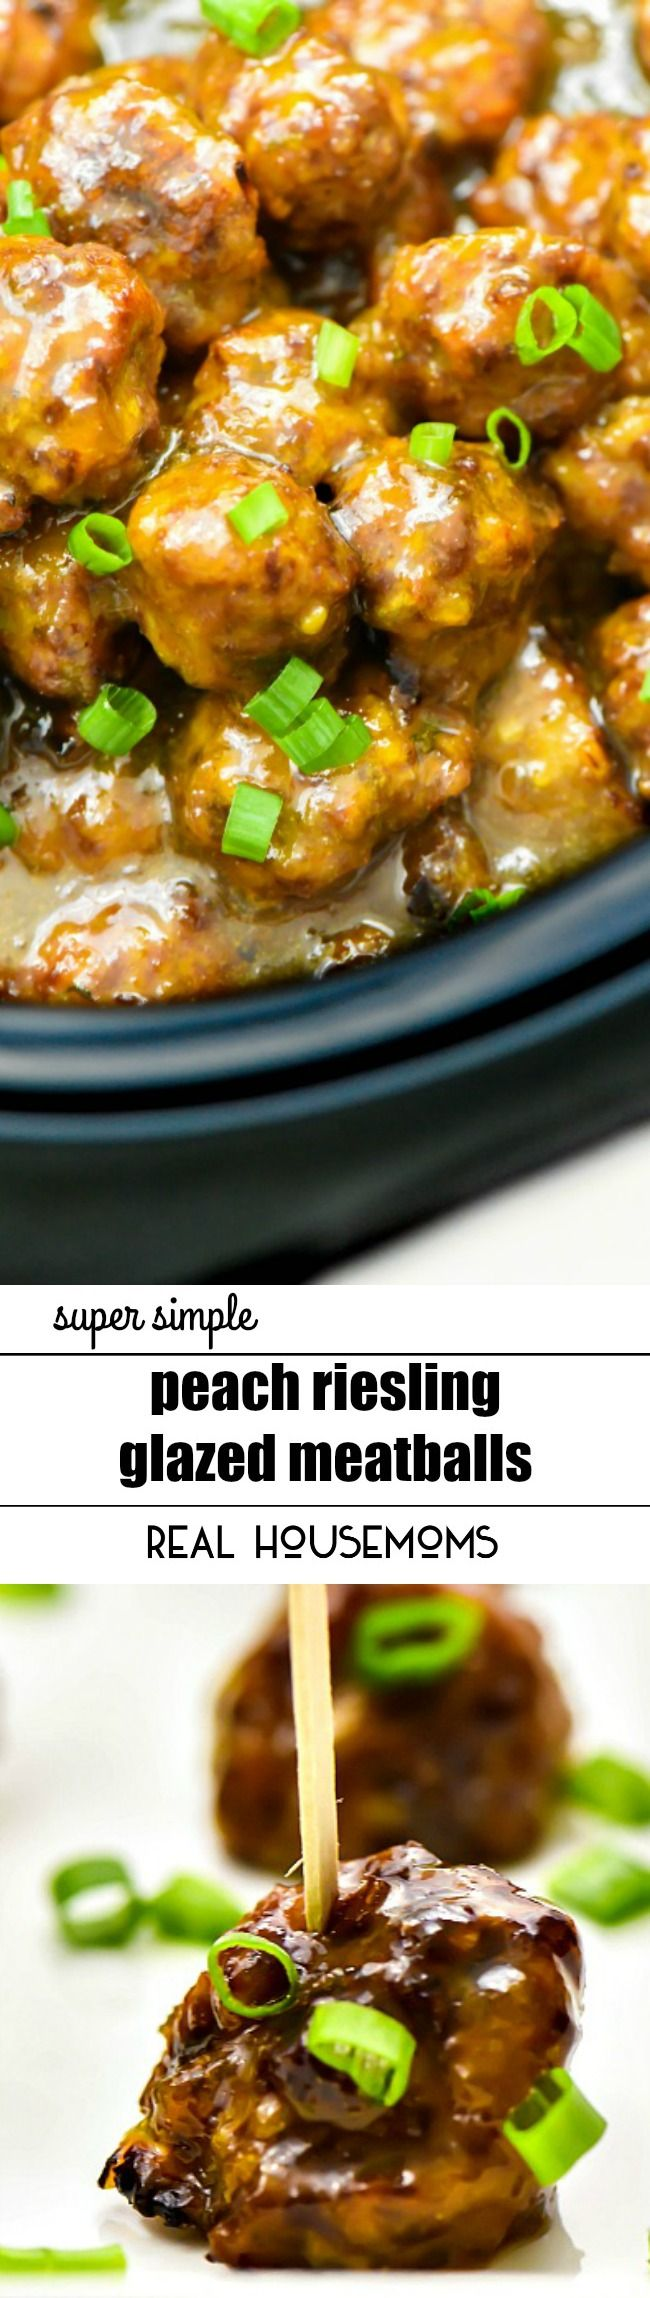 PEACH RIESLING GLAZED MEATBALLS are an easy party appetizer recipe! You could even serve these over rice for a tasty dinner on busy weeknights!